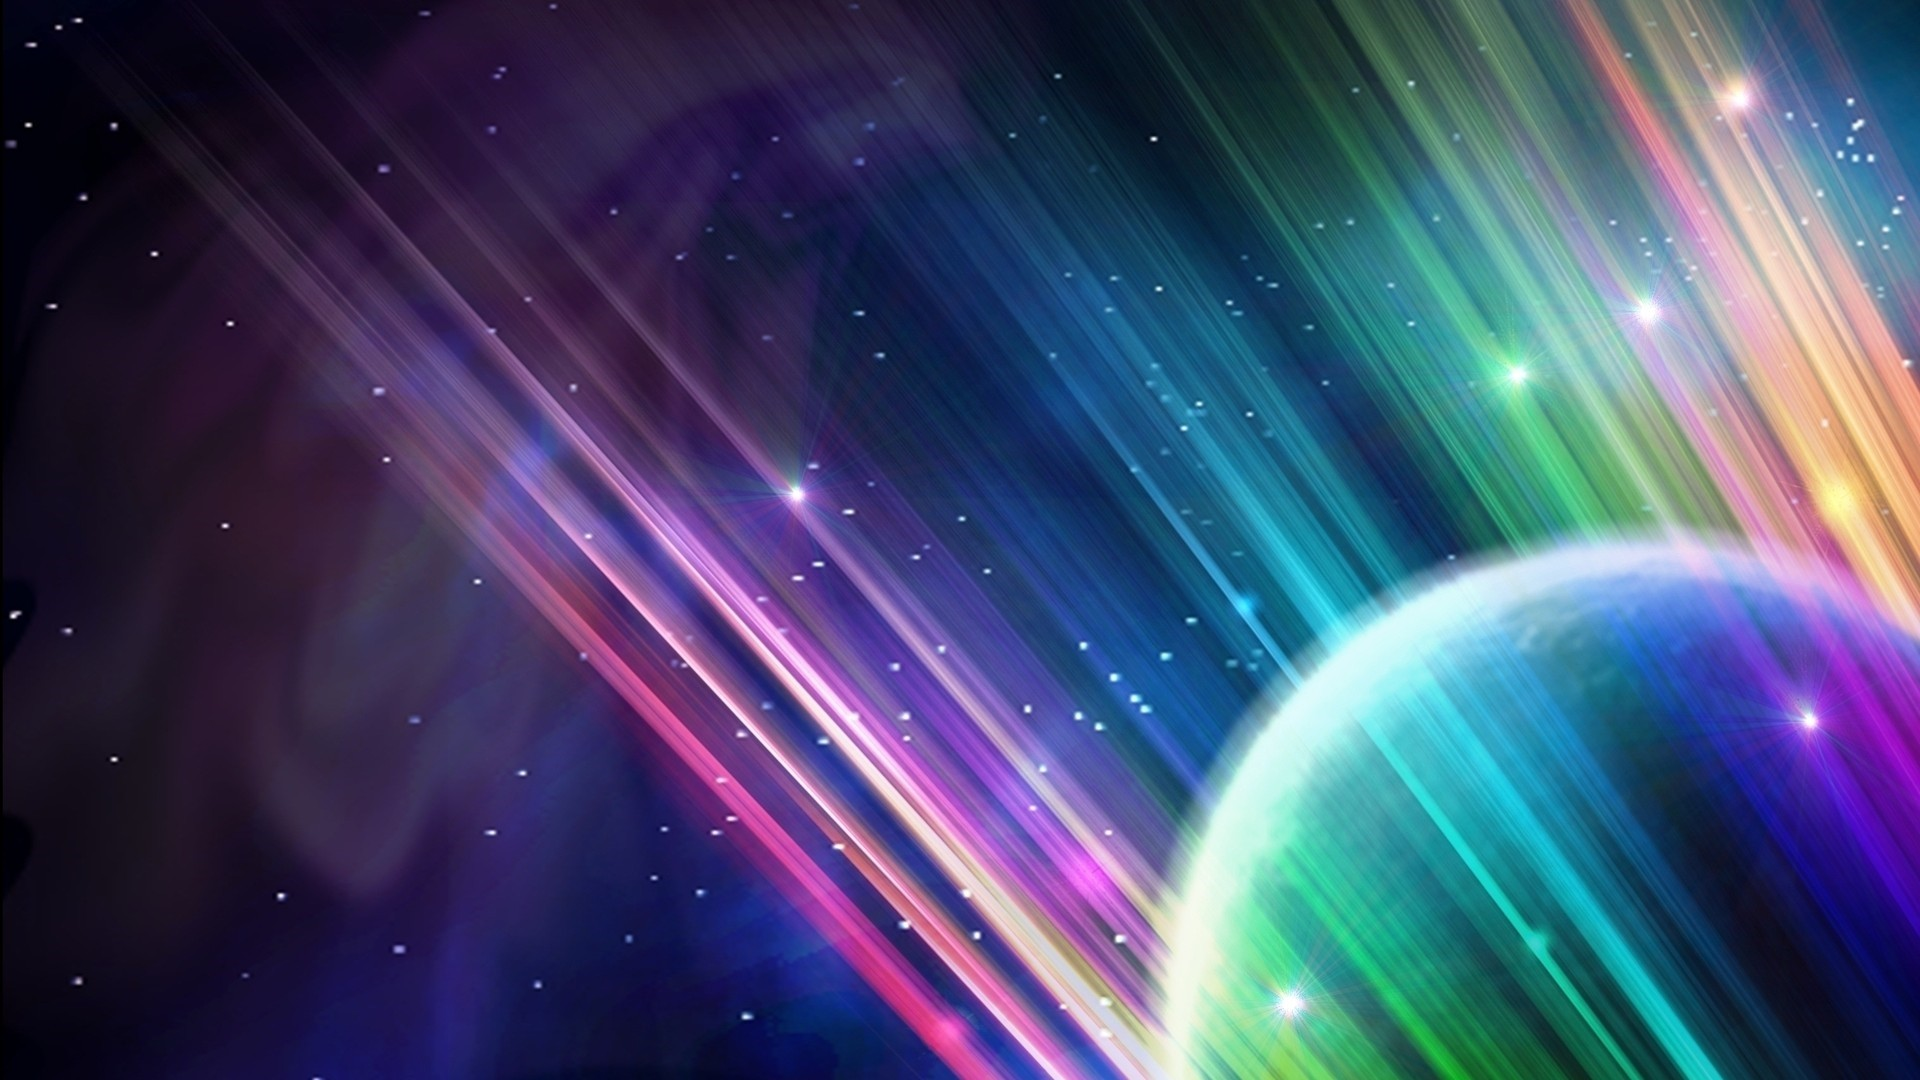 Abstract Space Wallpaper and Background